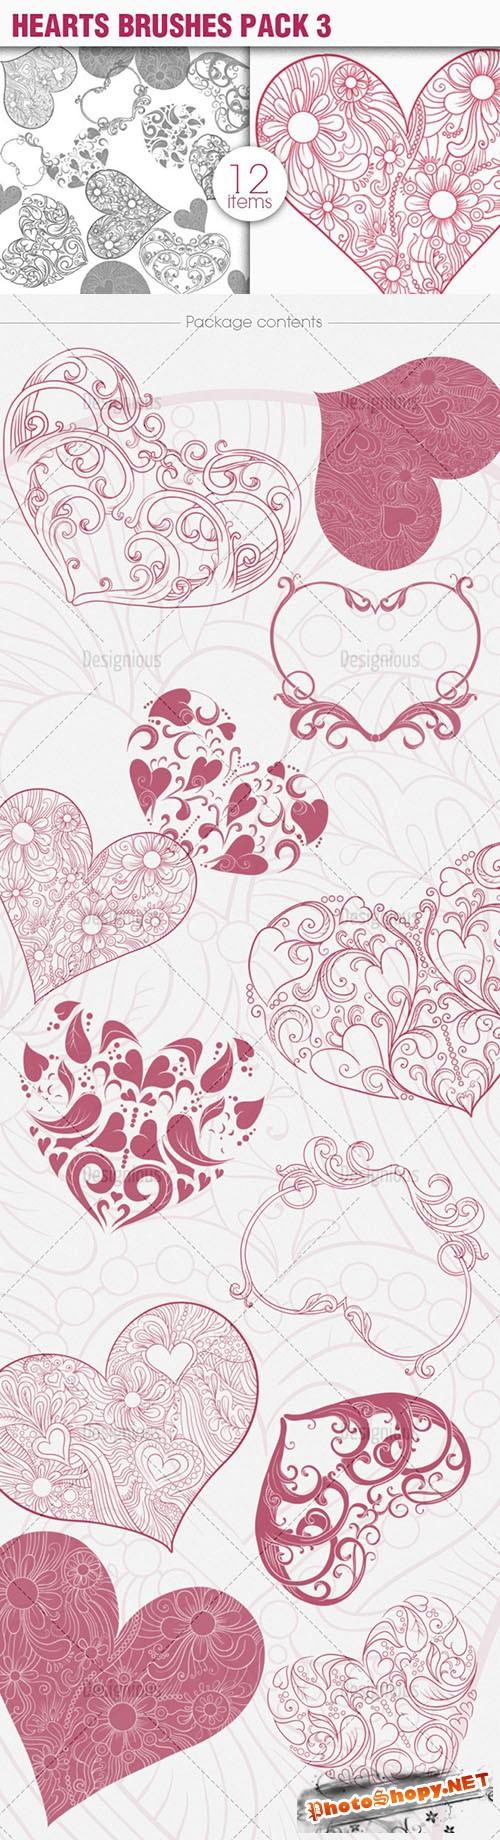 Hearts Photoshop Brushes Pack 3